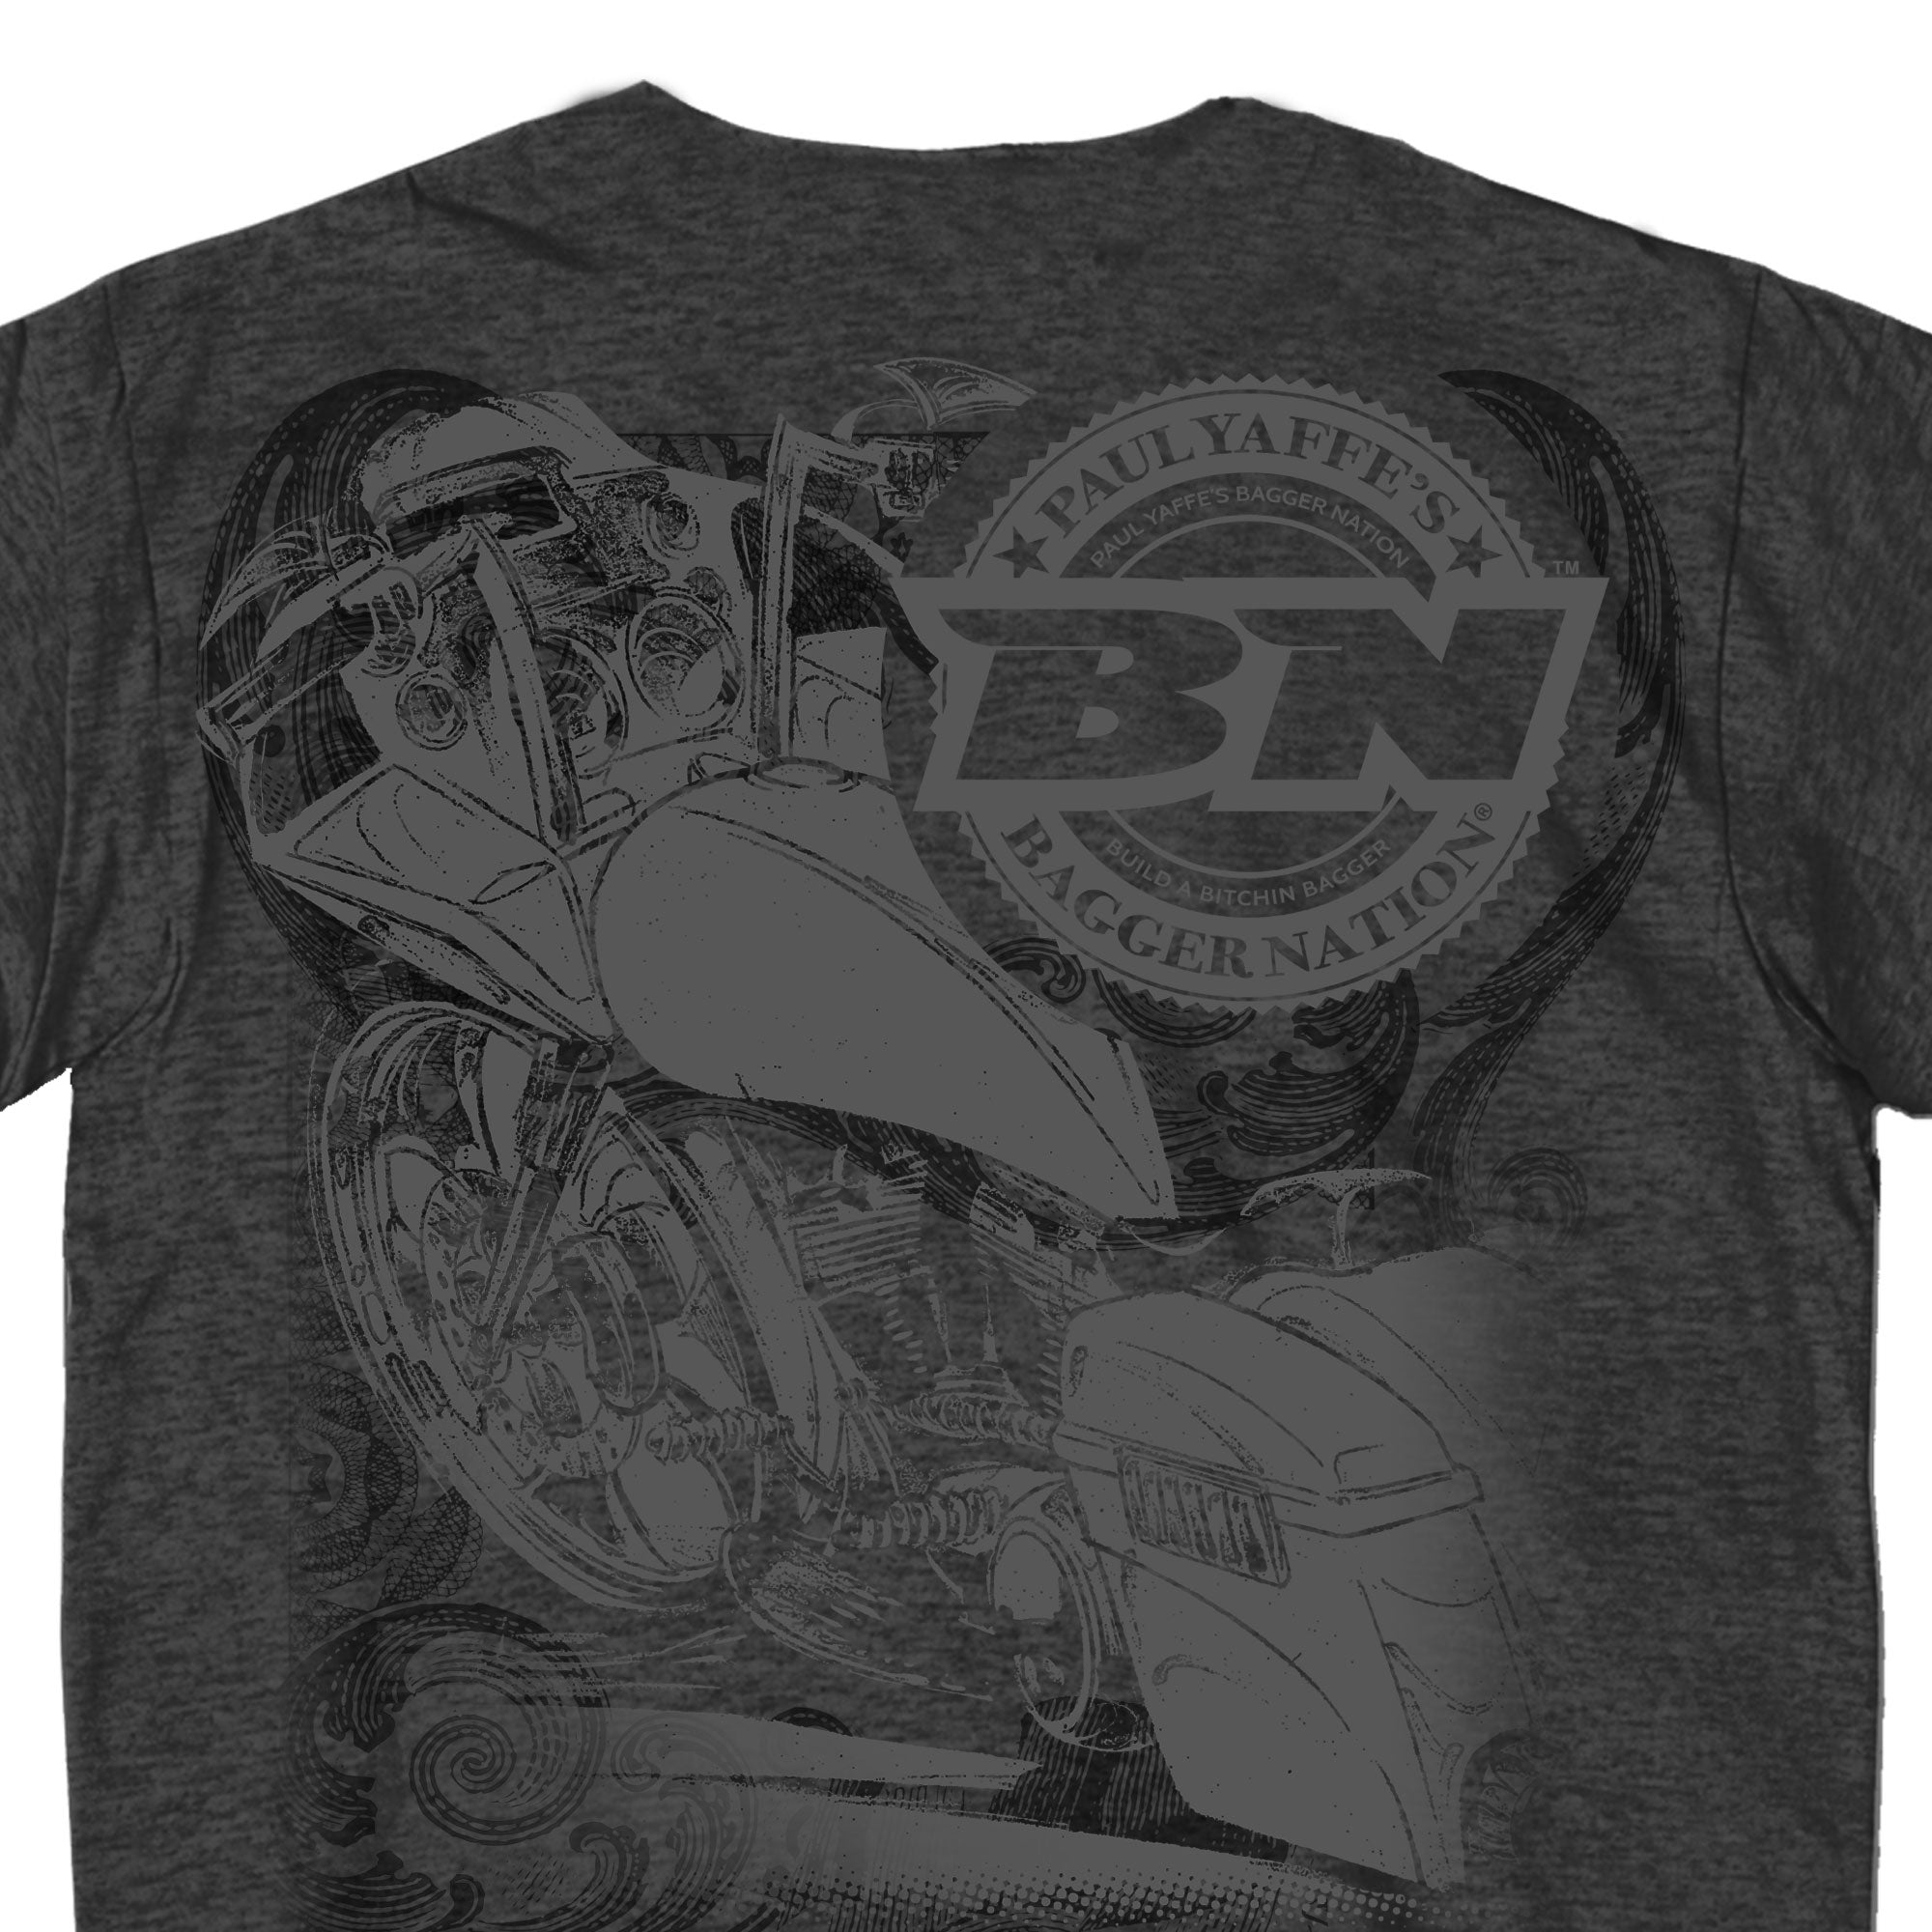 Official Paul Yaffe's Bagger Nation Jumbo Script T-Shirt